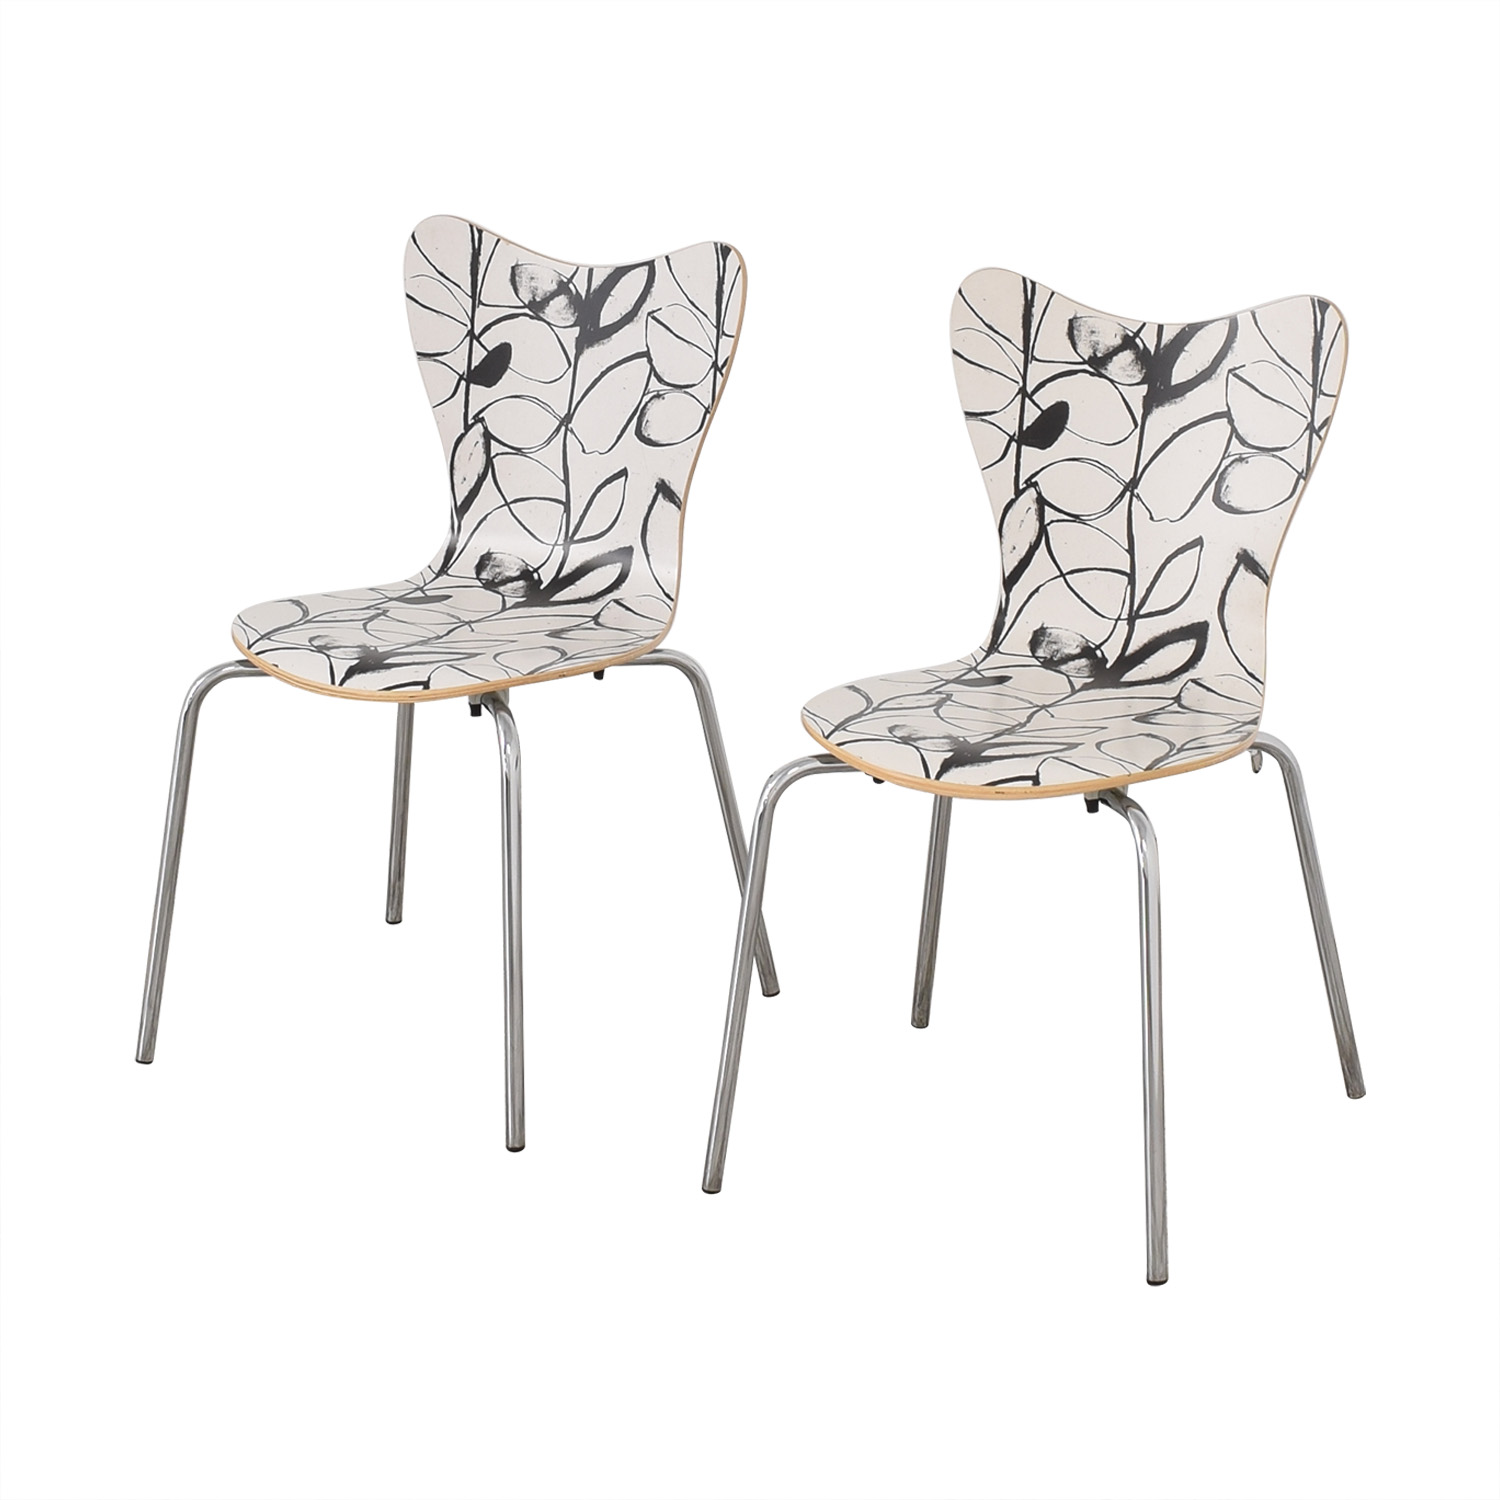 West Elm West Elm Decorative Dining Chairs price